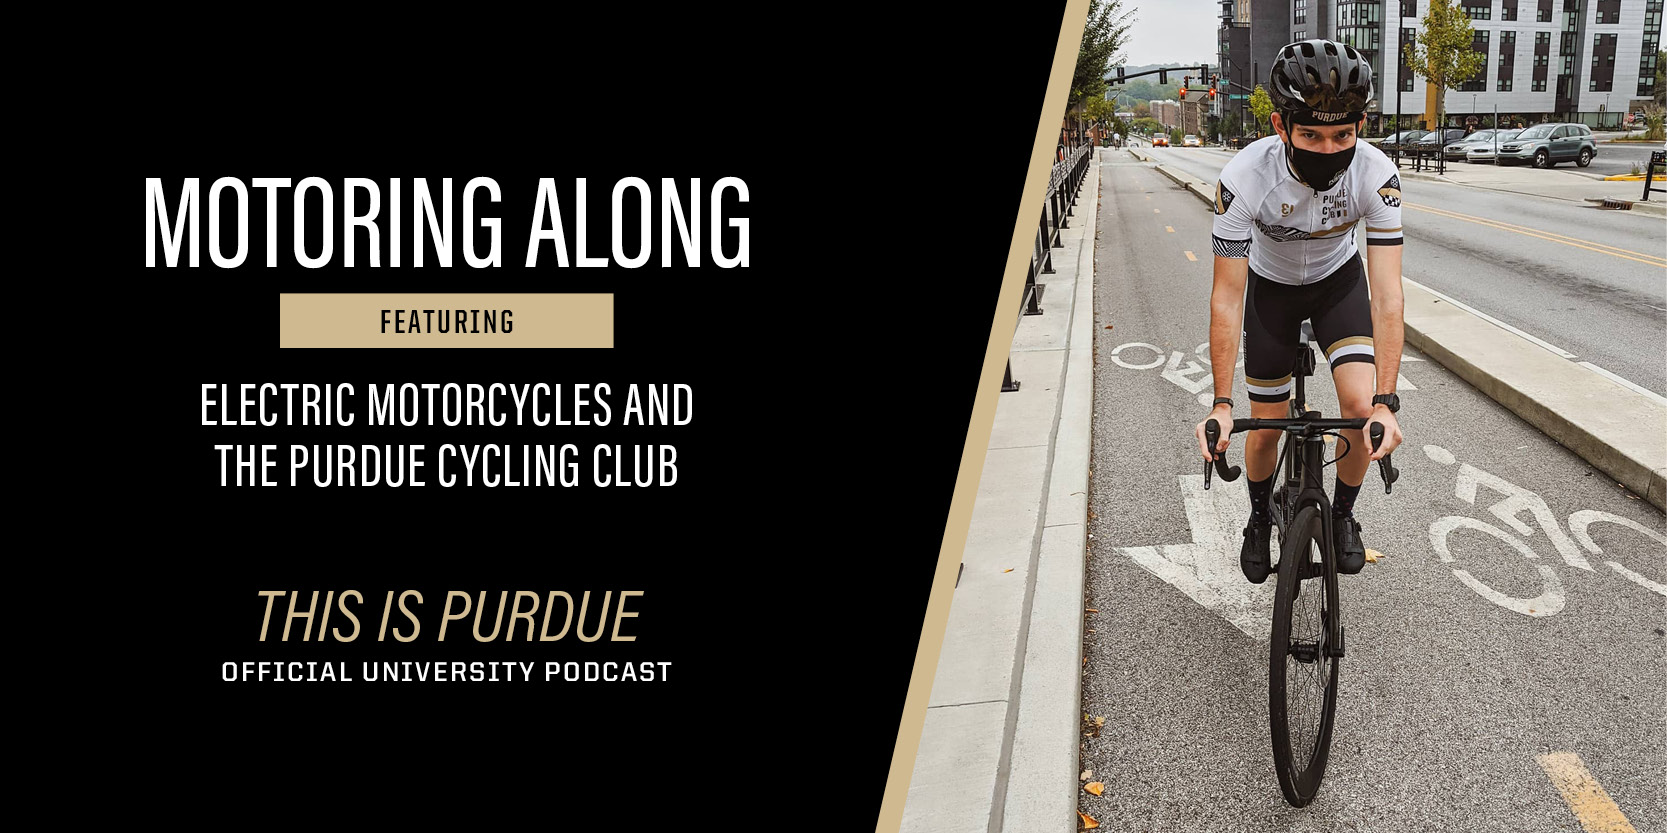 Electric motorcycles and the Purdue cycling club